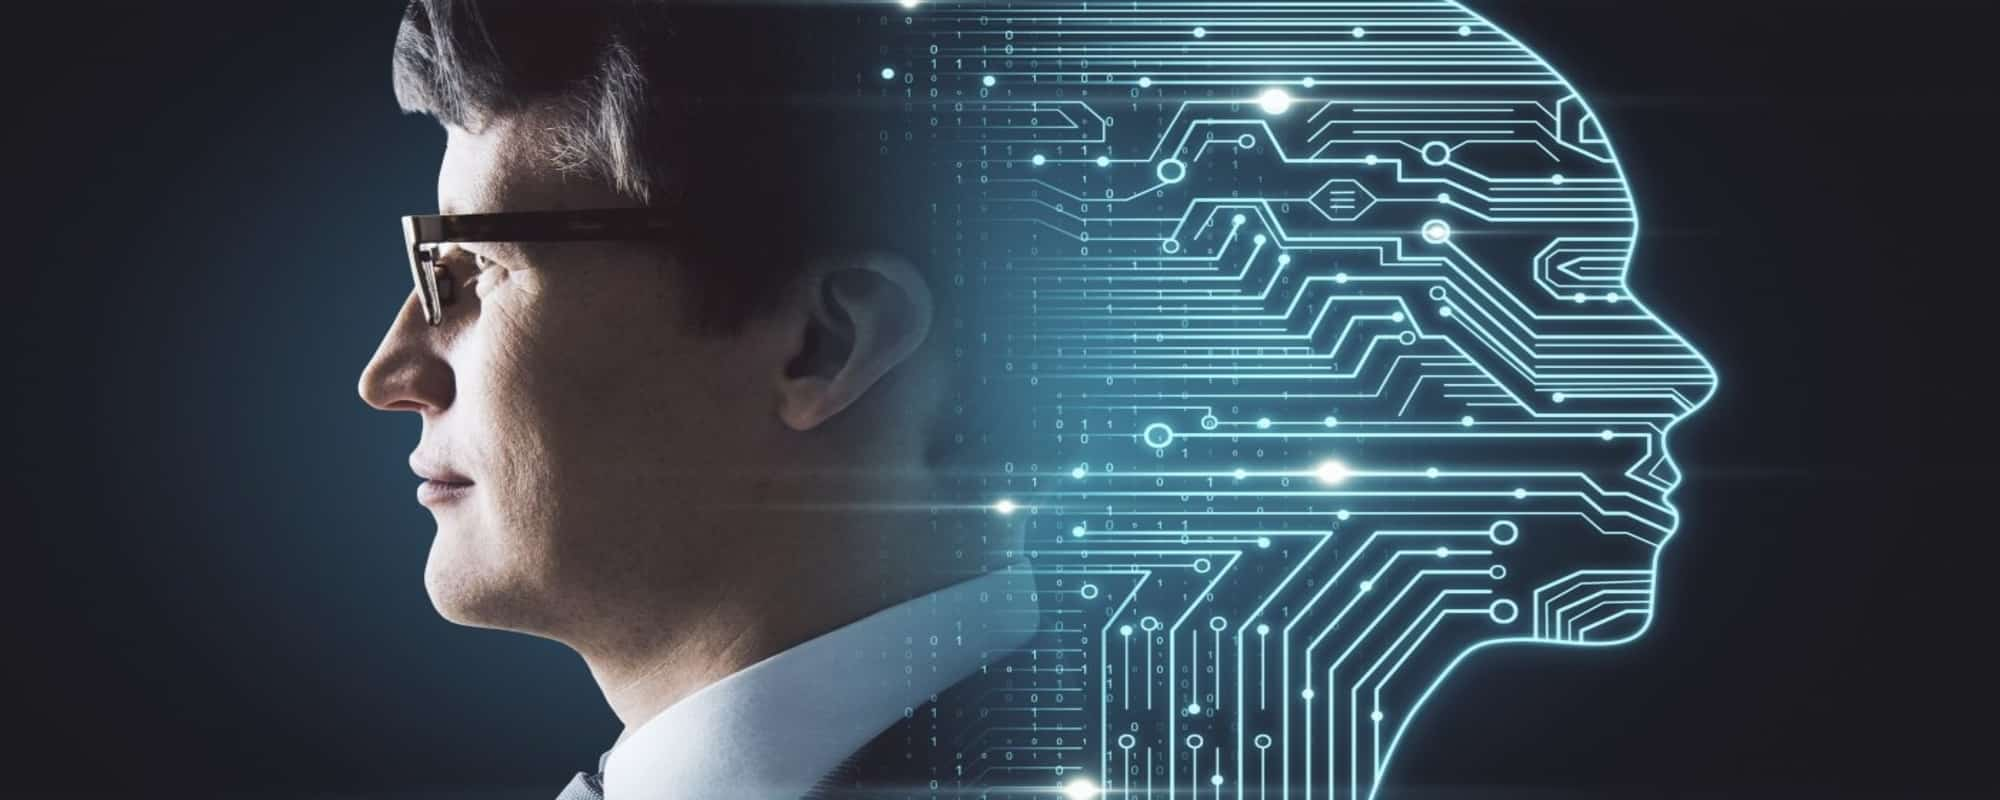 How Artificial Intelligence Will Transform Business